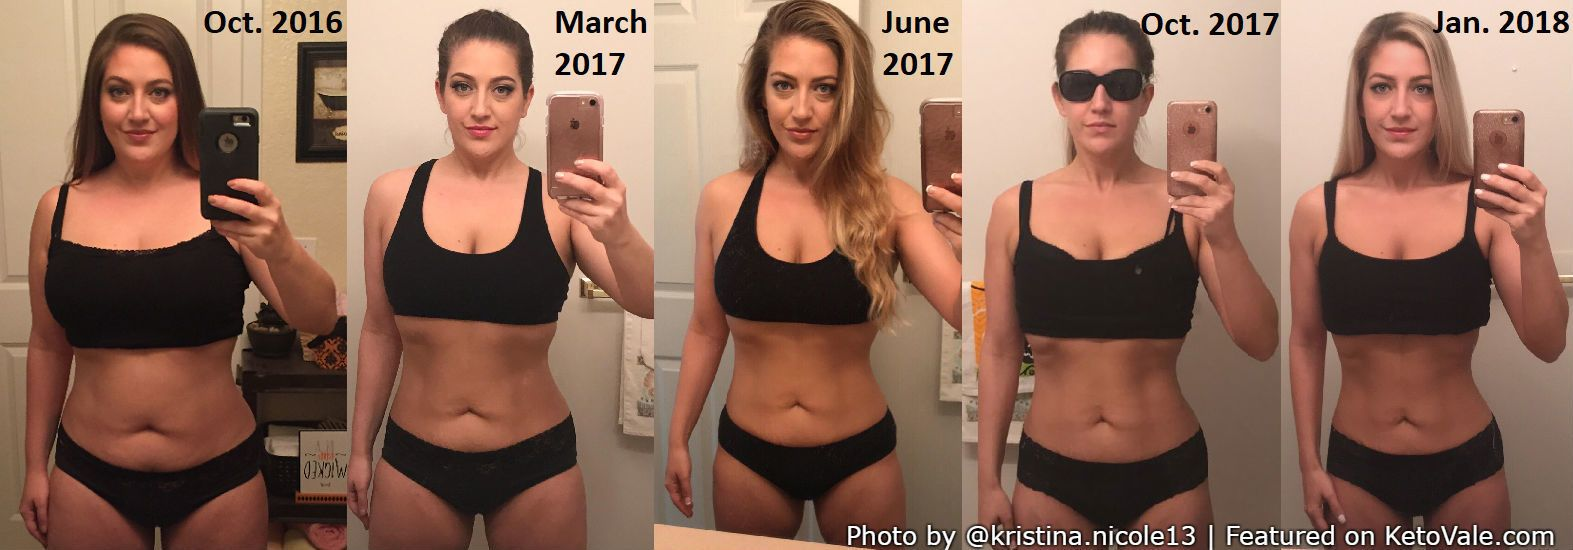 Pin On Diet Ketogenic Low Carb